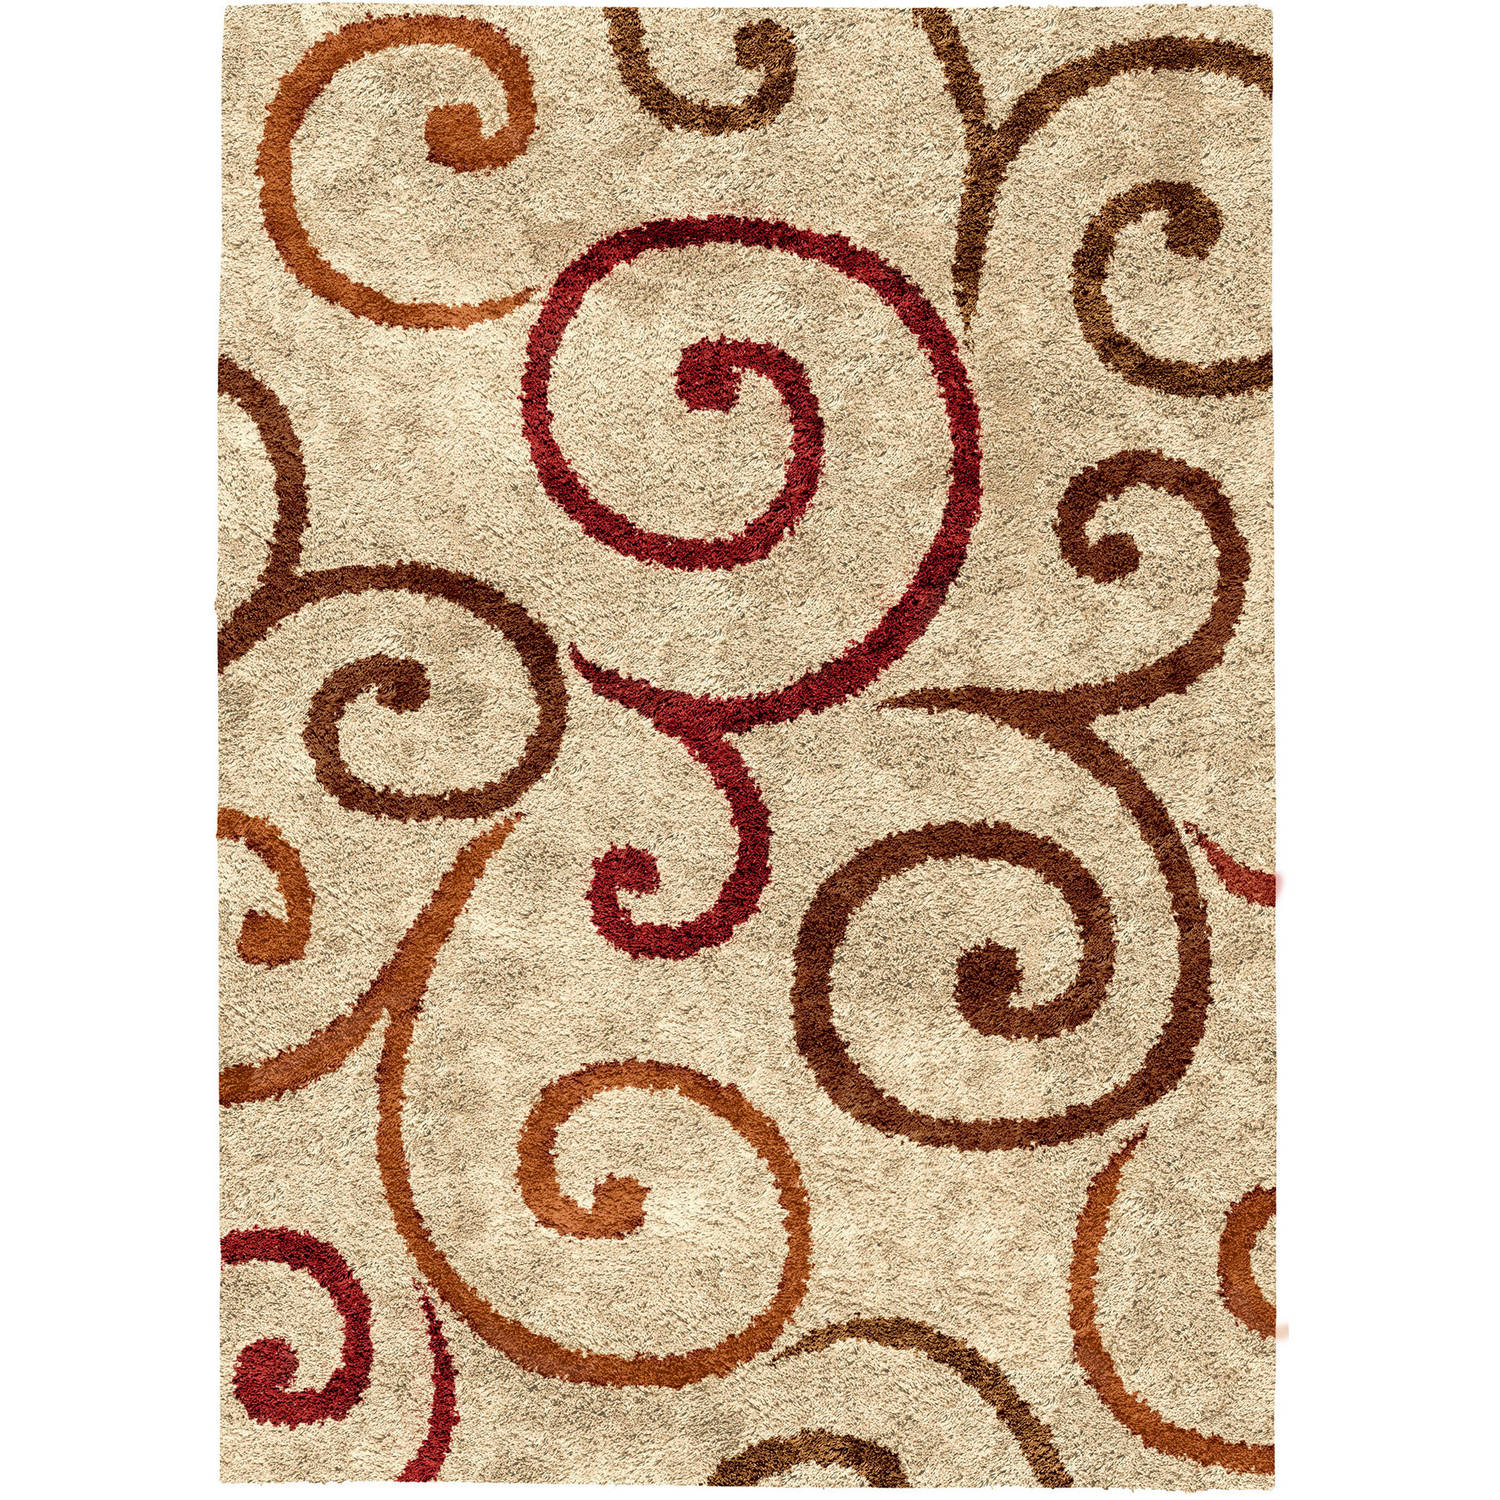 Better Homes and Gardens Swirls Area Rug Available In Multiple Colors And Sizes